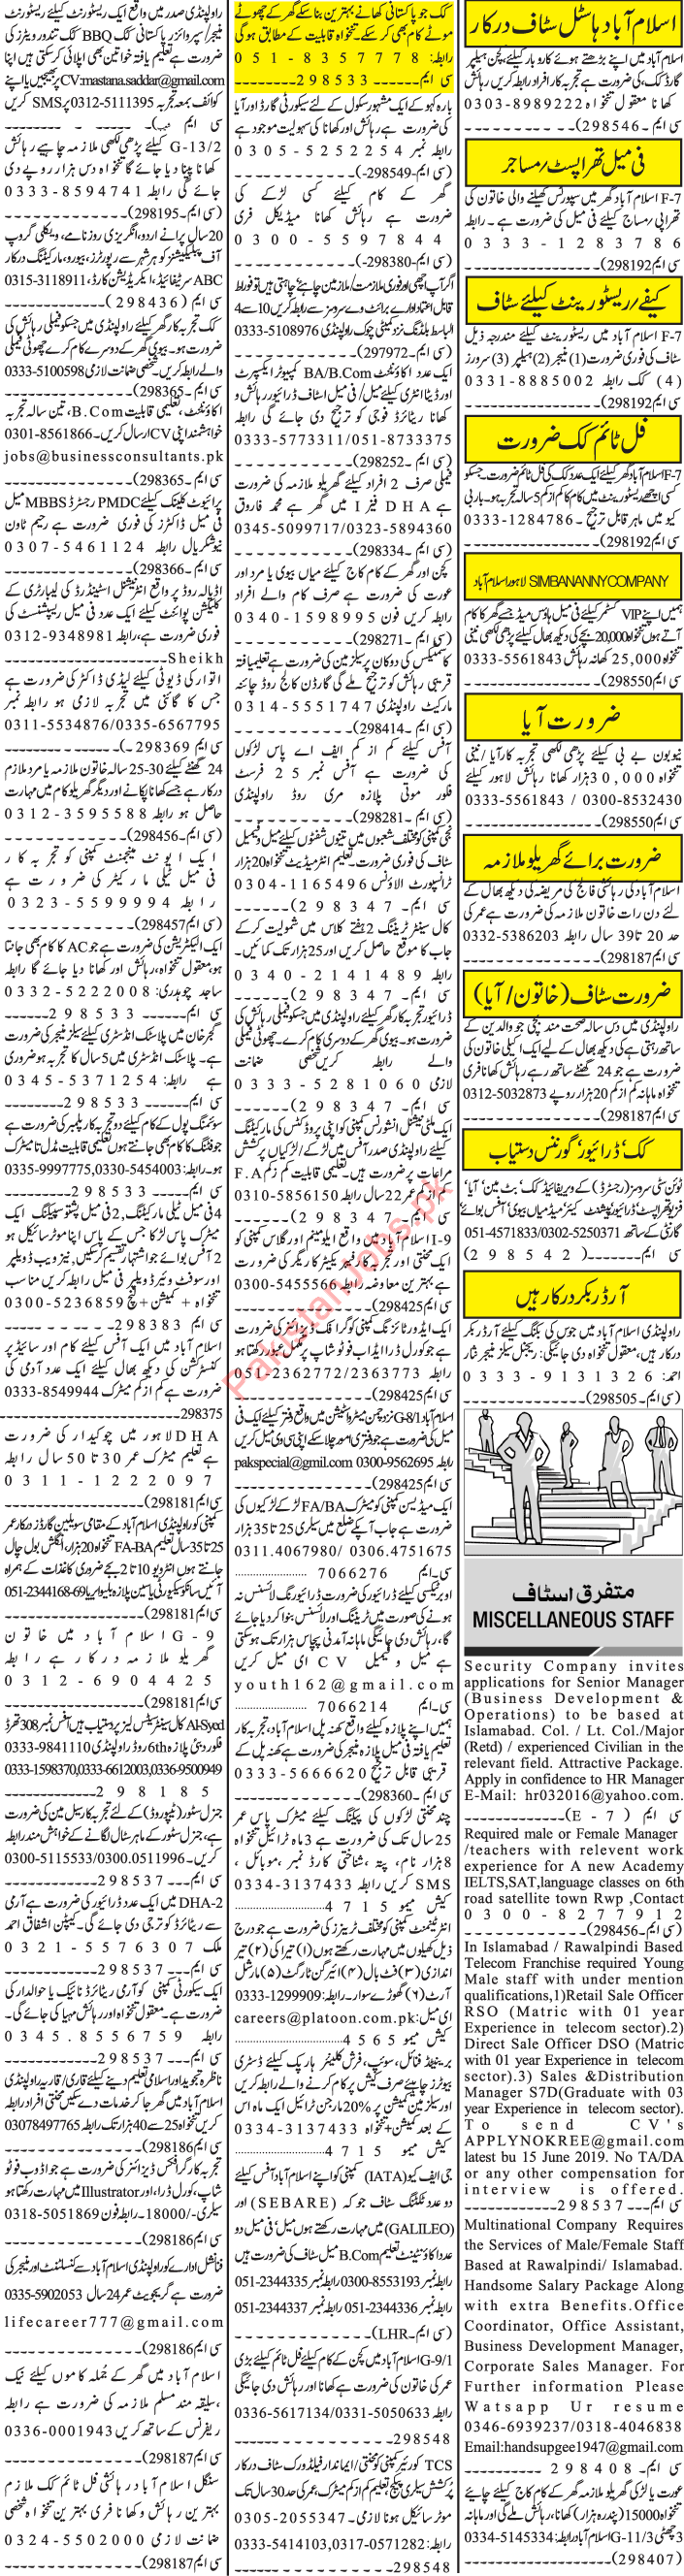 Jang Sunday Rawalpindi Classified Ads 26th May 2019 for Multiple